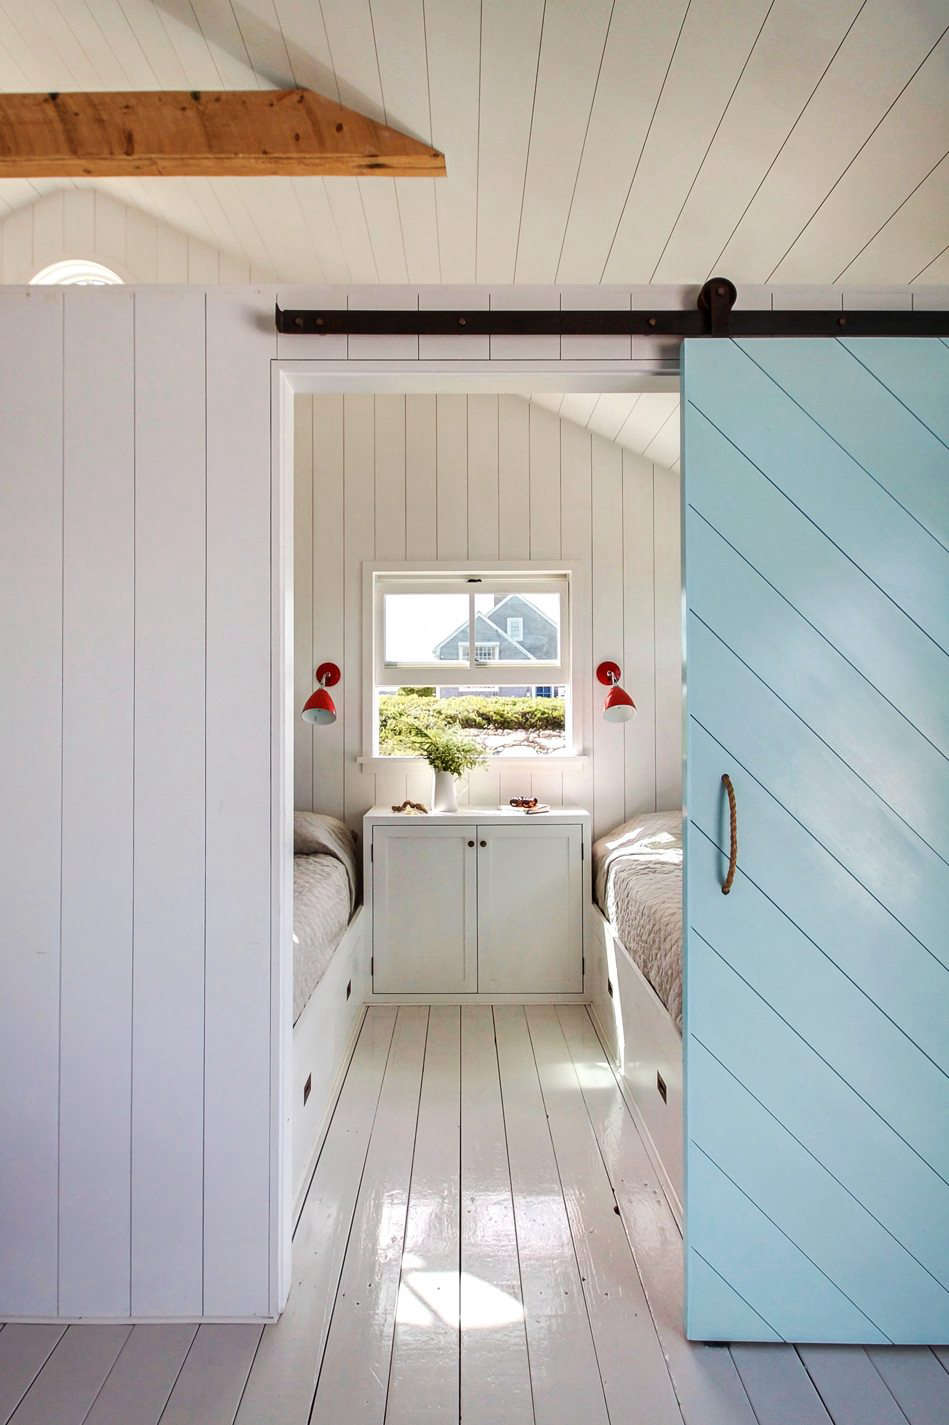 Groovy A Shipshape Cape Cod Cottage Inspired By Wes Andersons The Home Interior And Landscaping Ferensignezvosmurscom